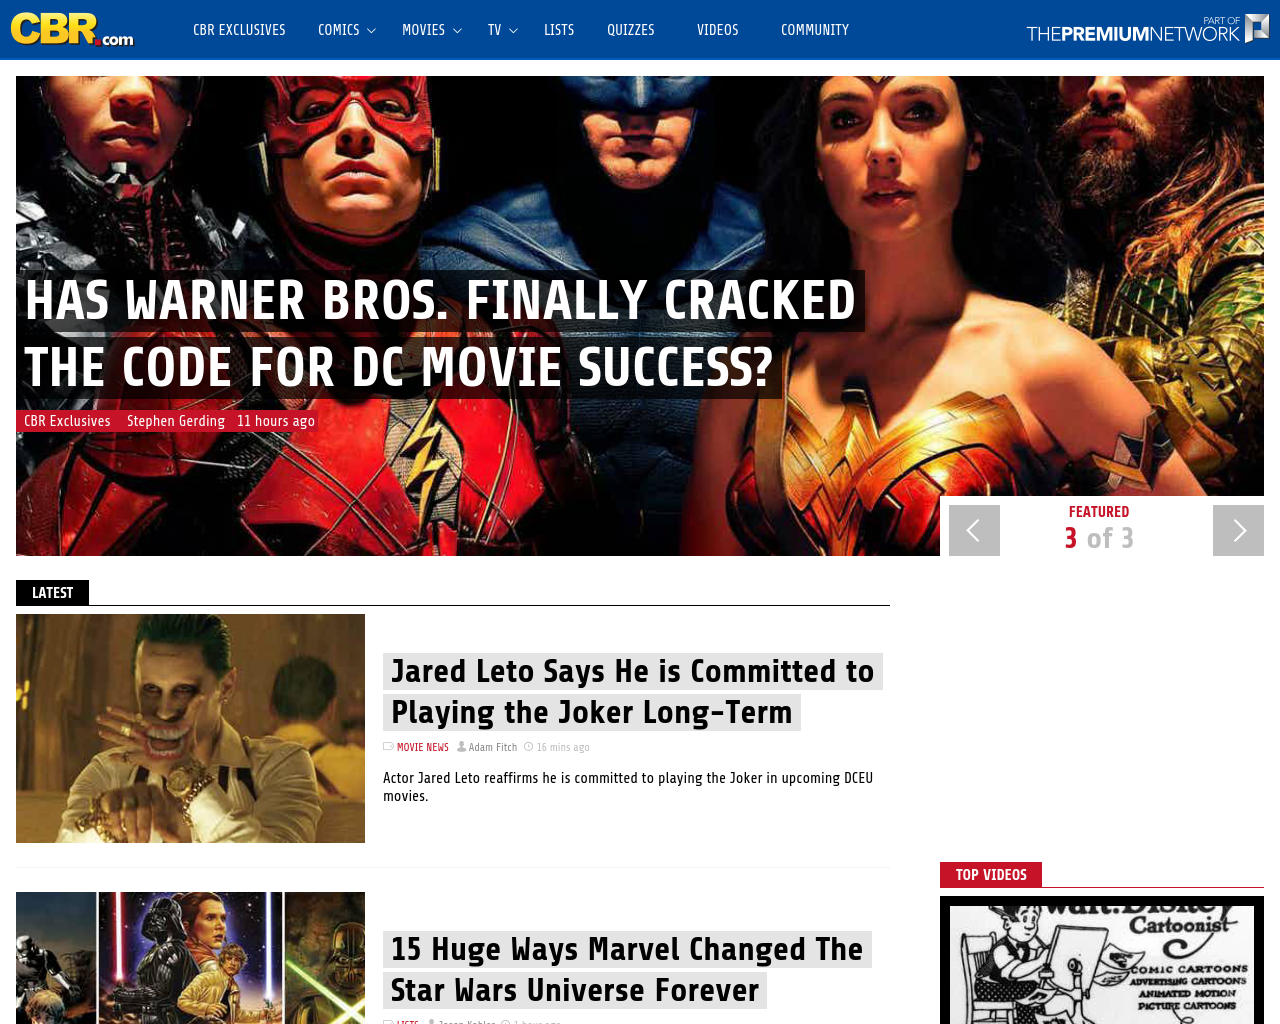 Comic-Book-Resources-Advertising-Reviews-Pricing